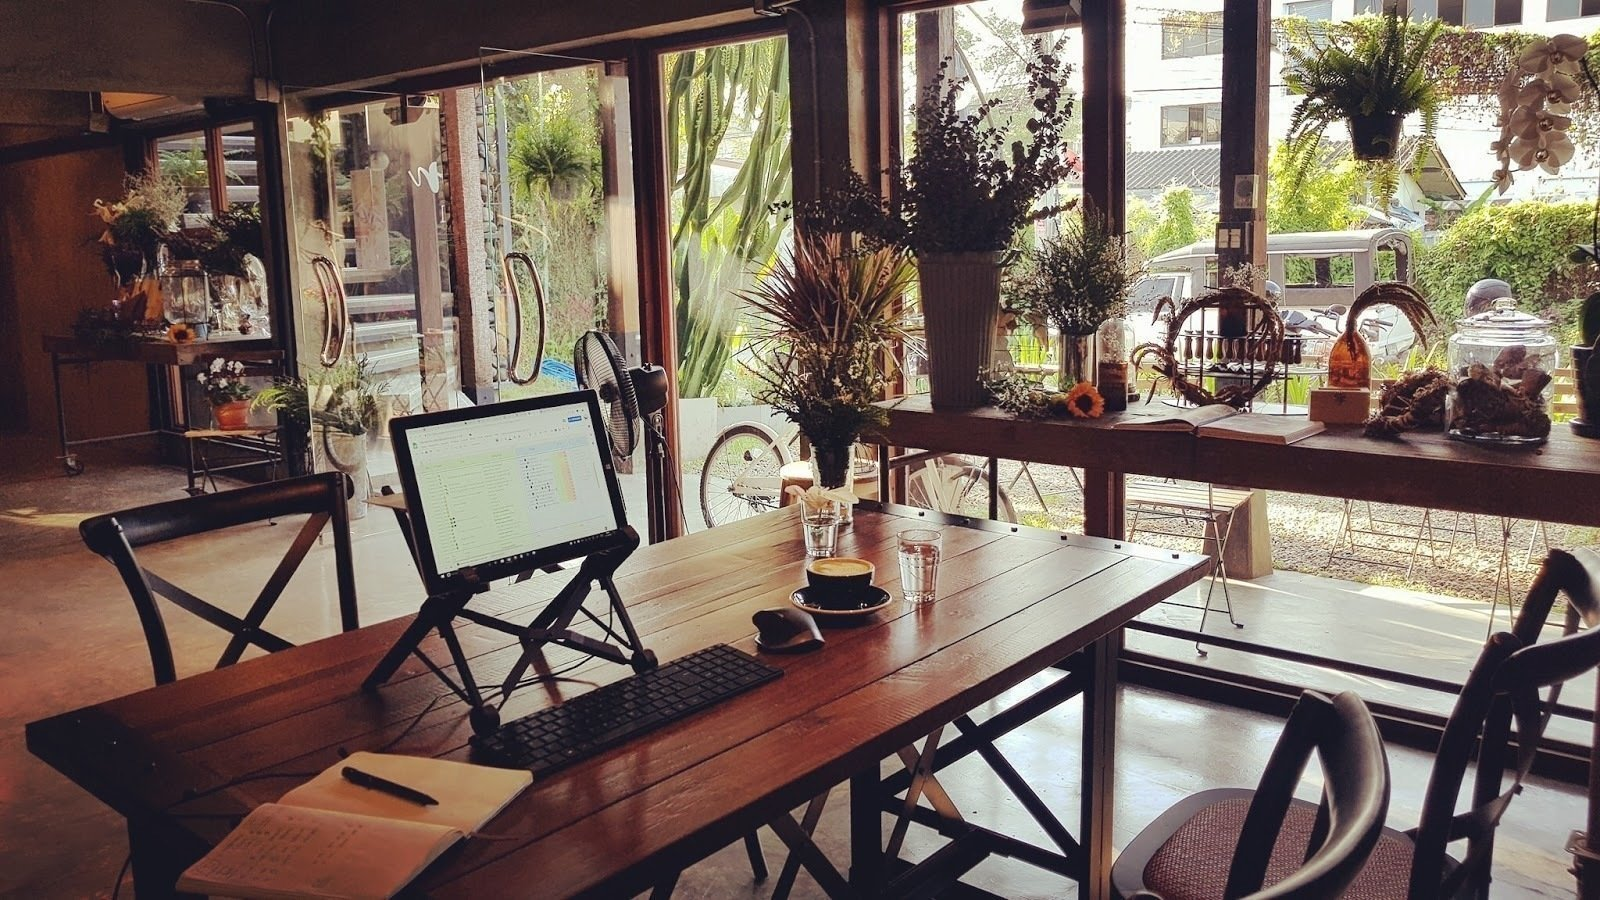 Passion Project the Café: A Work-Friendly Place in Chiang Mai